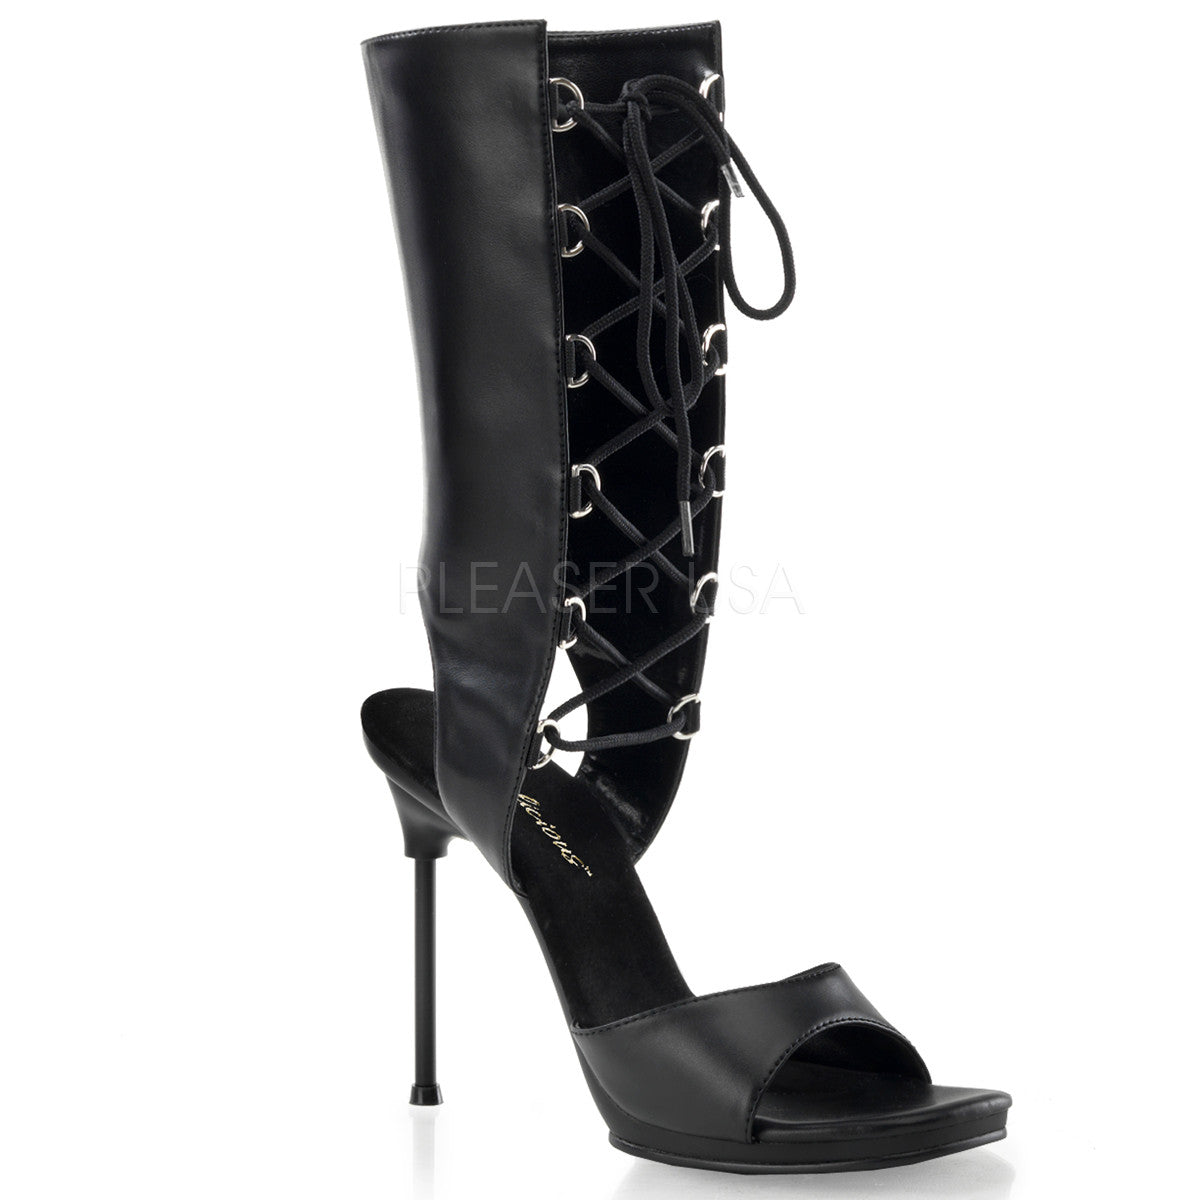 Fabulicious,FABULICIOUS CHIC-65 Black Pu-Black Matte Mid Calf Boots - Shoecup.com